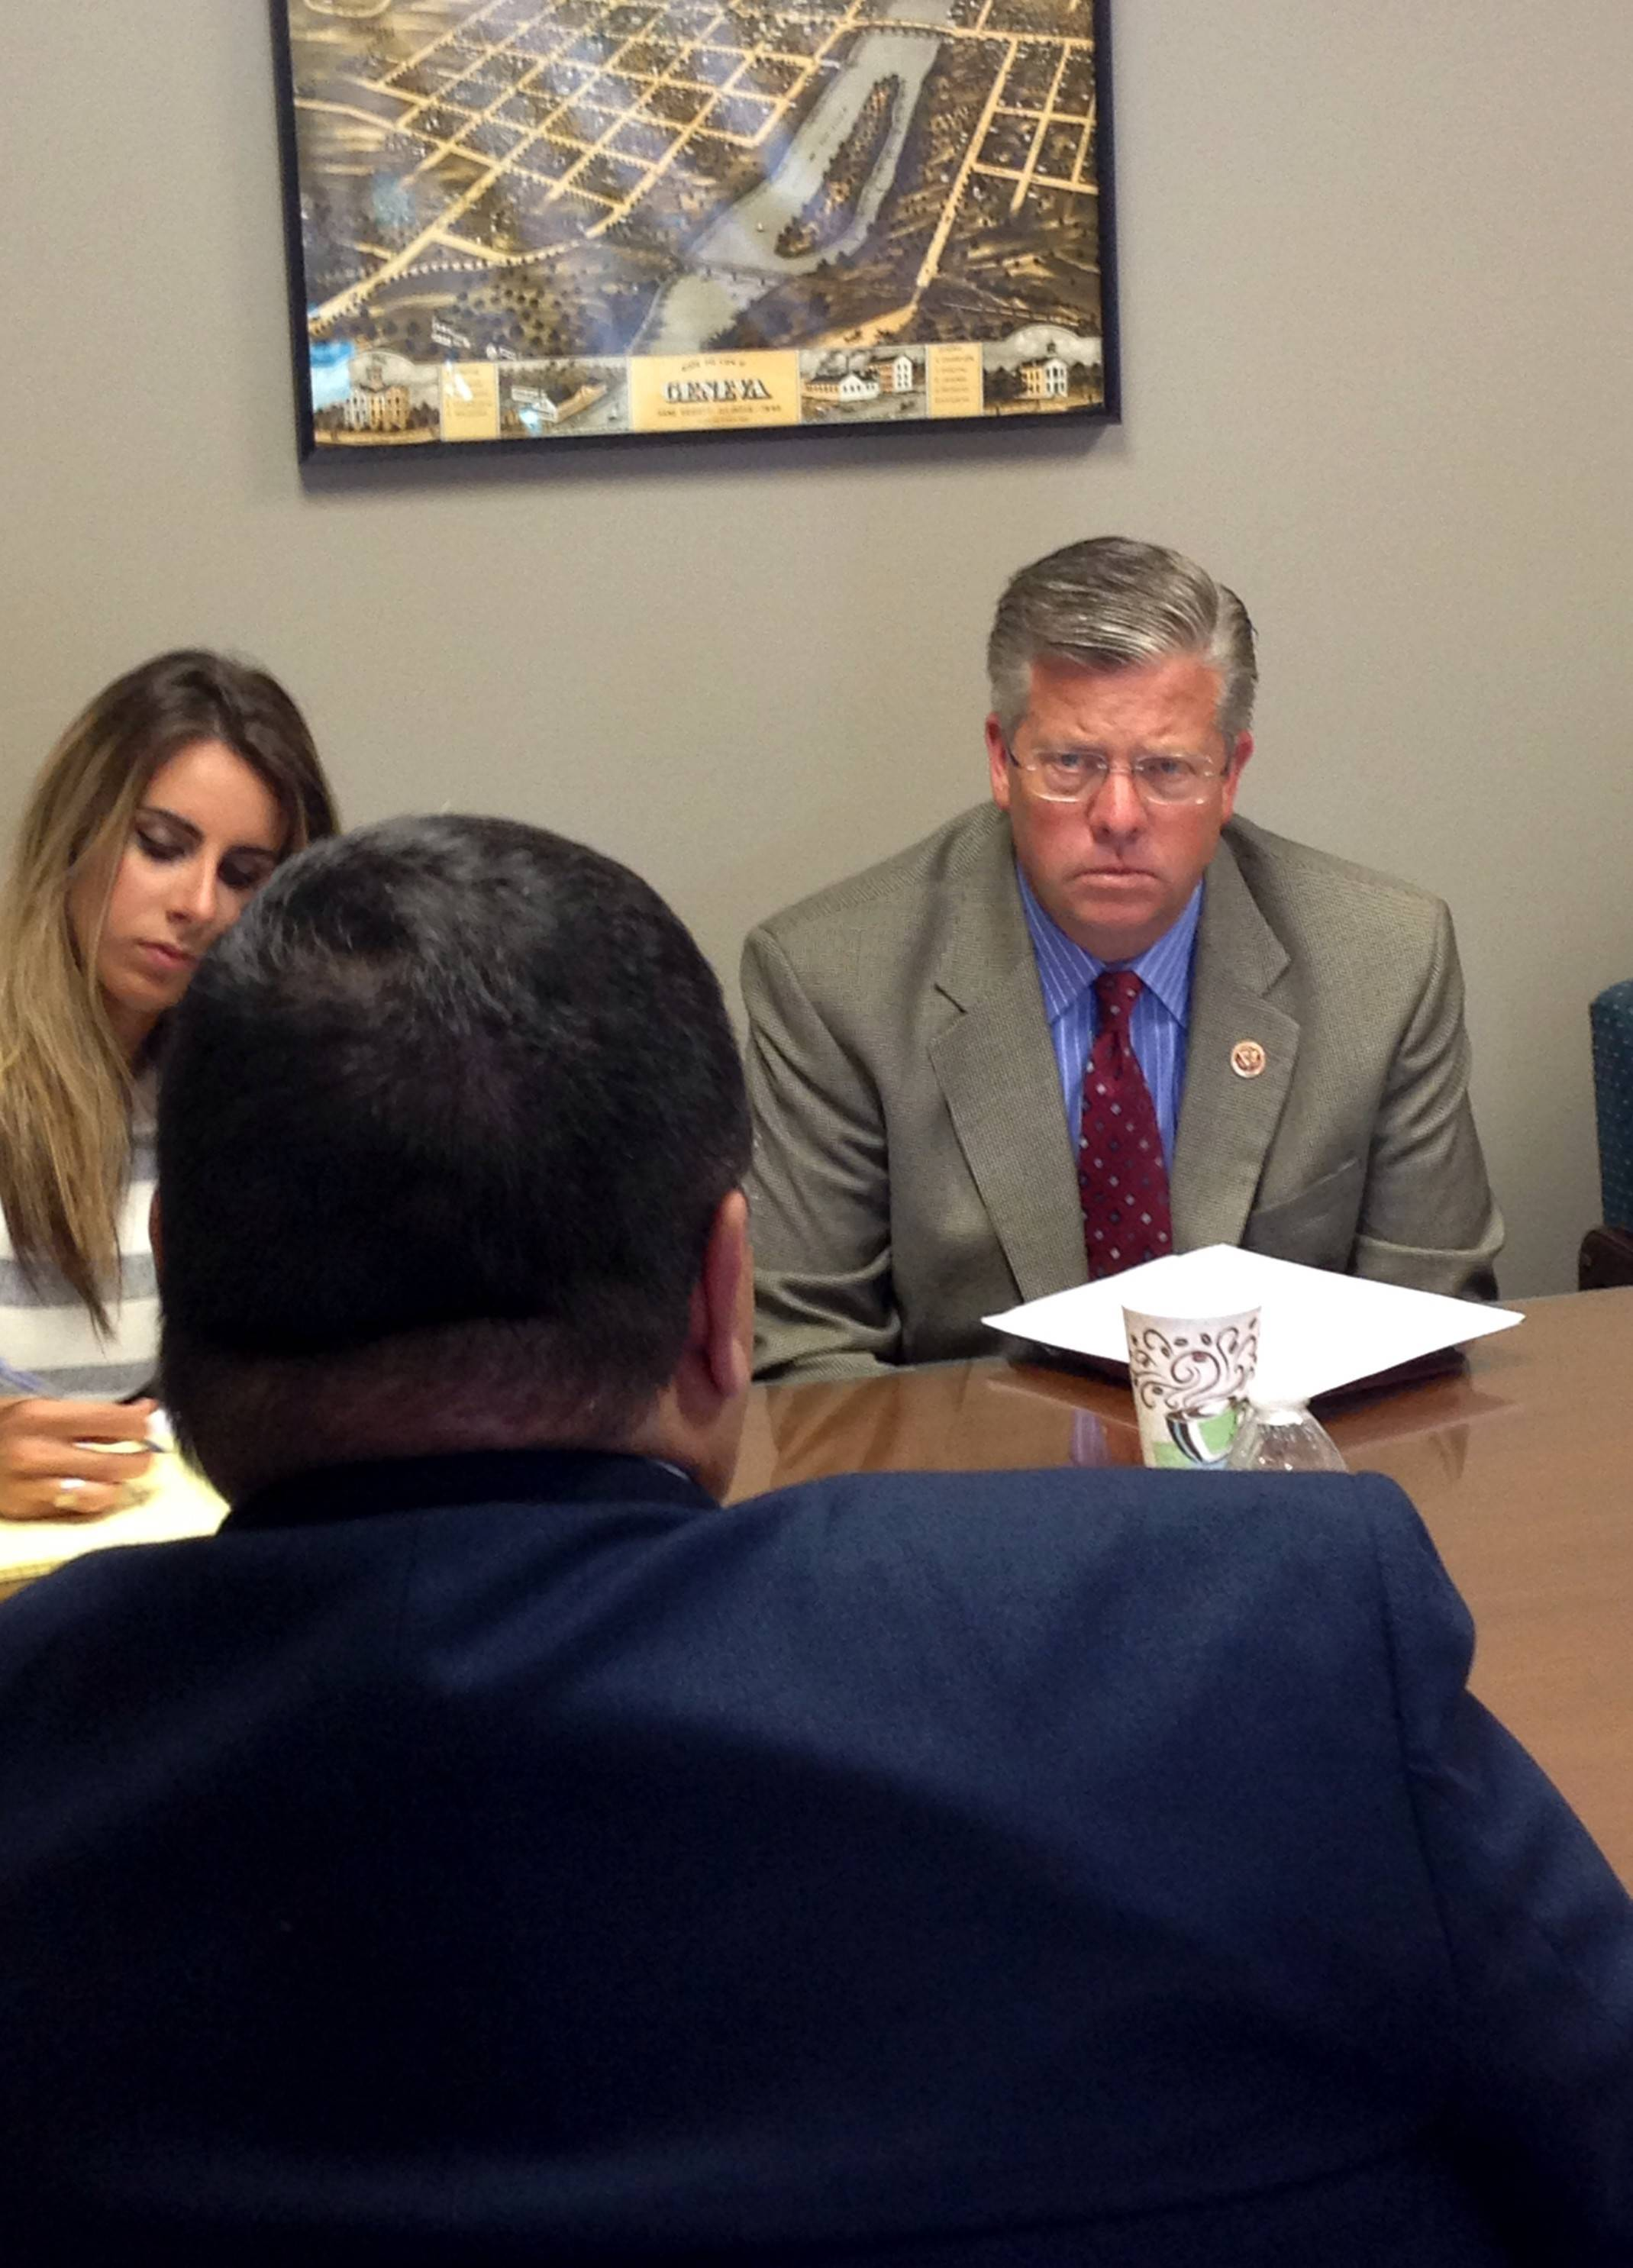 Congressman Randy Hultgren faced off with local military veterans groups and benefits providers at his Geneva district office on Friday. Hultgren had pointed questions about a backlog in benefits claims for Tona Vela, veterans service center manager of the Chicago Regional Benefits office of Veterans Affairs.